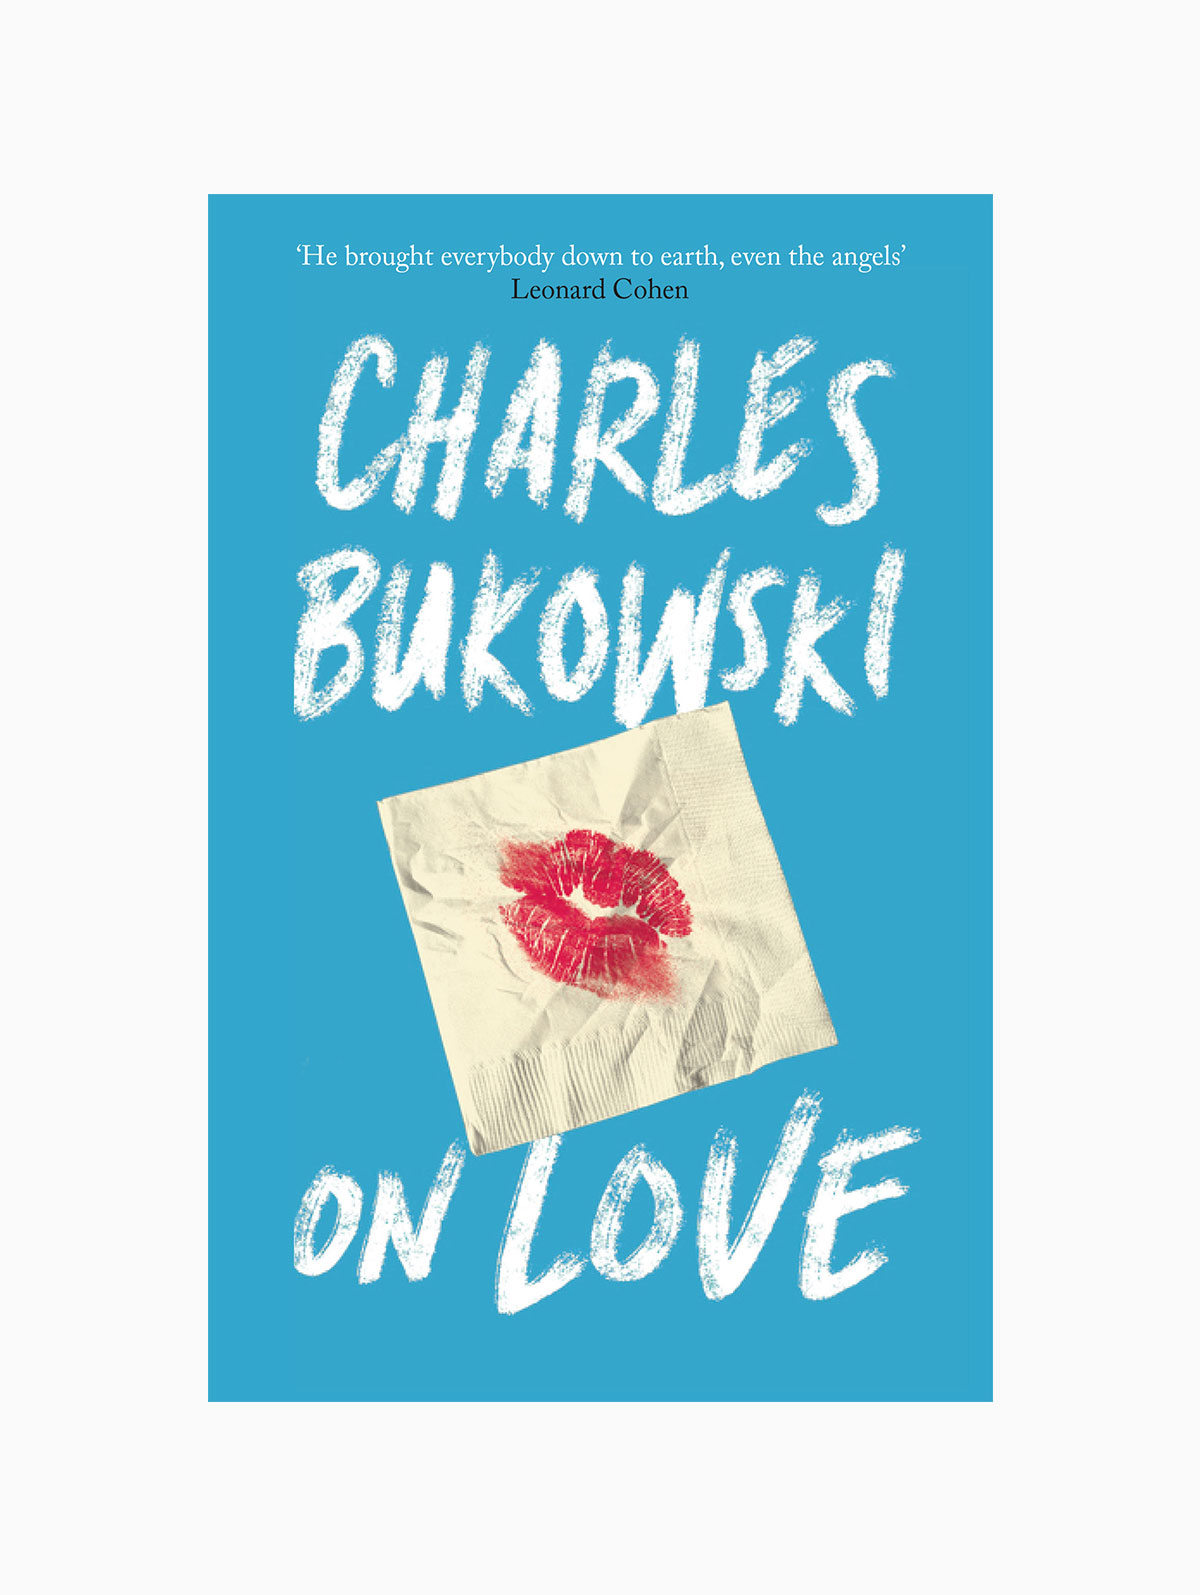 Charles Bukowski On Love